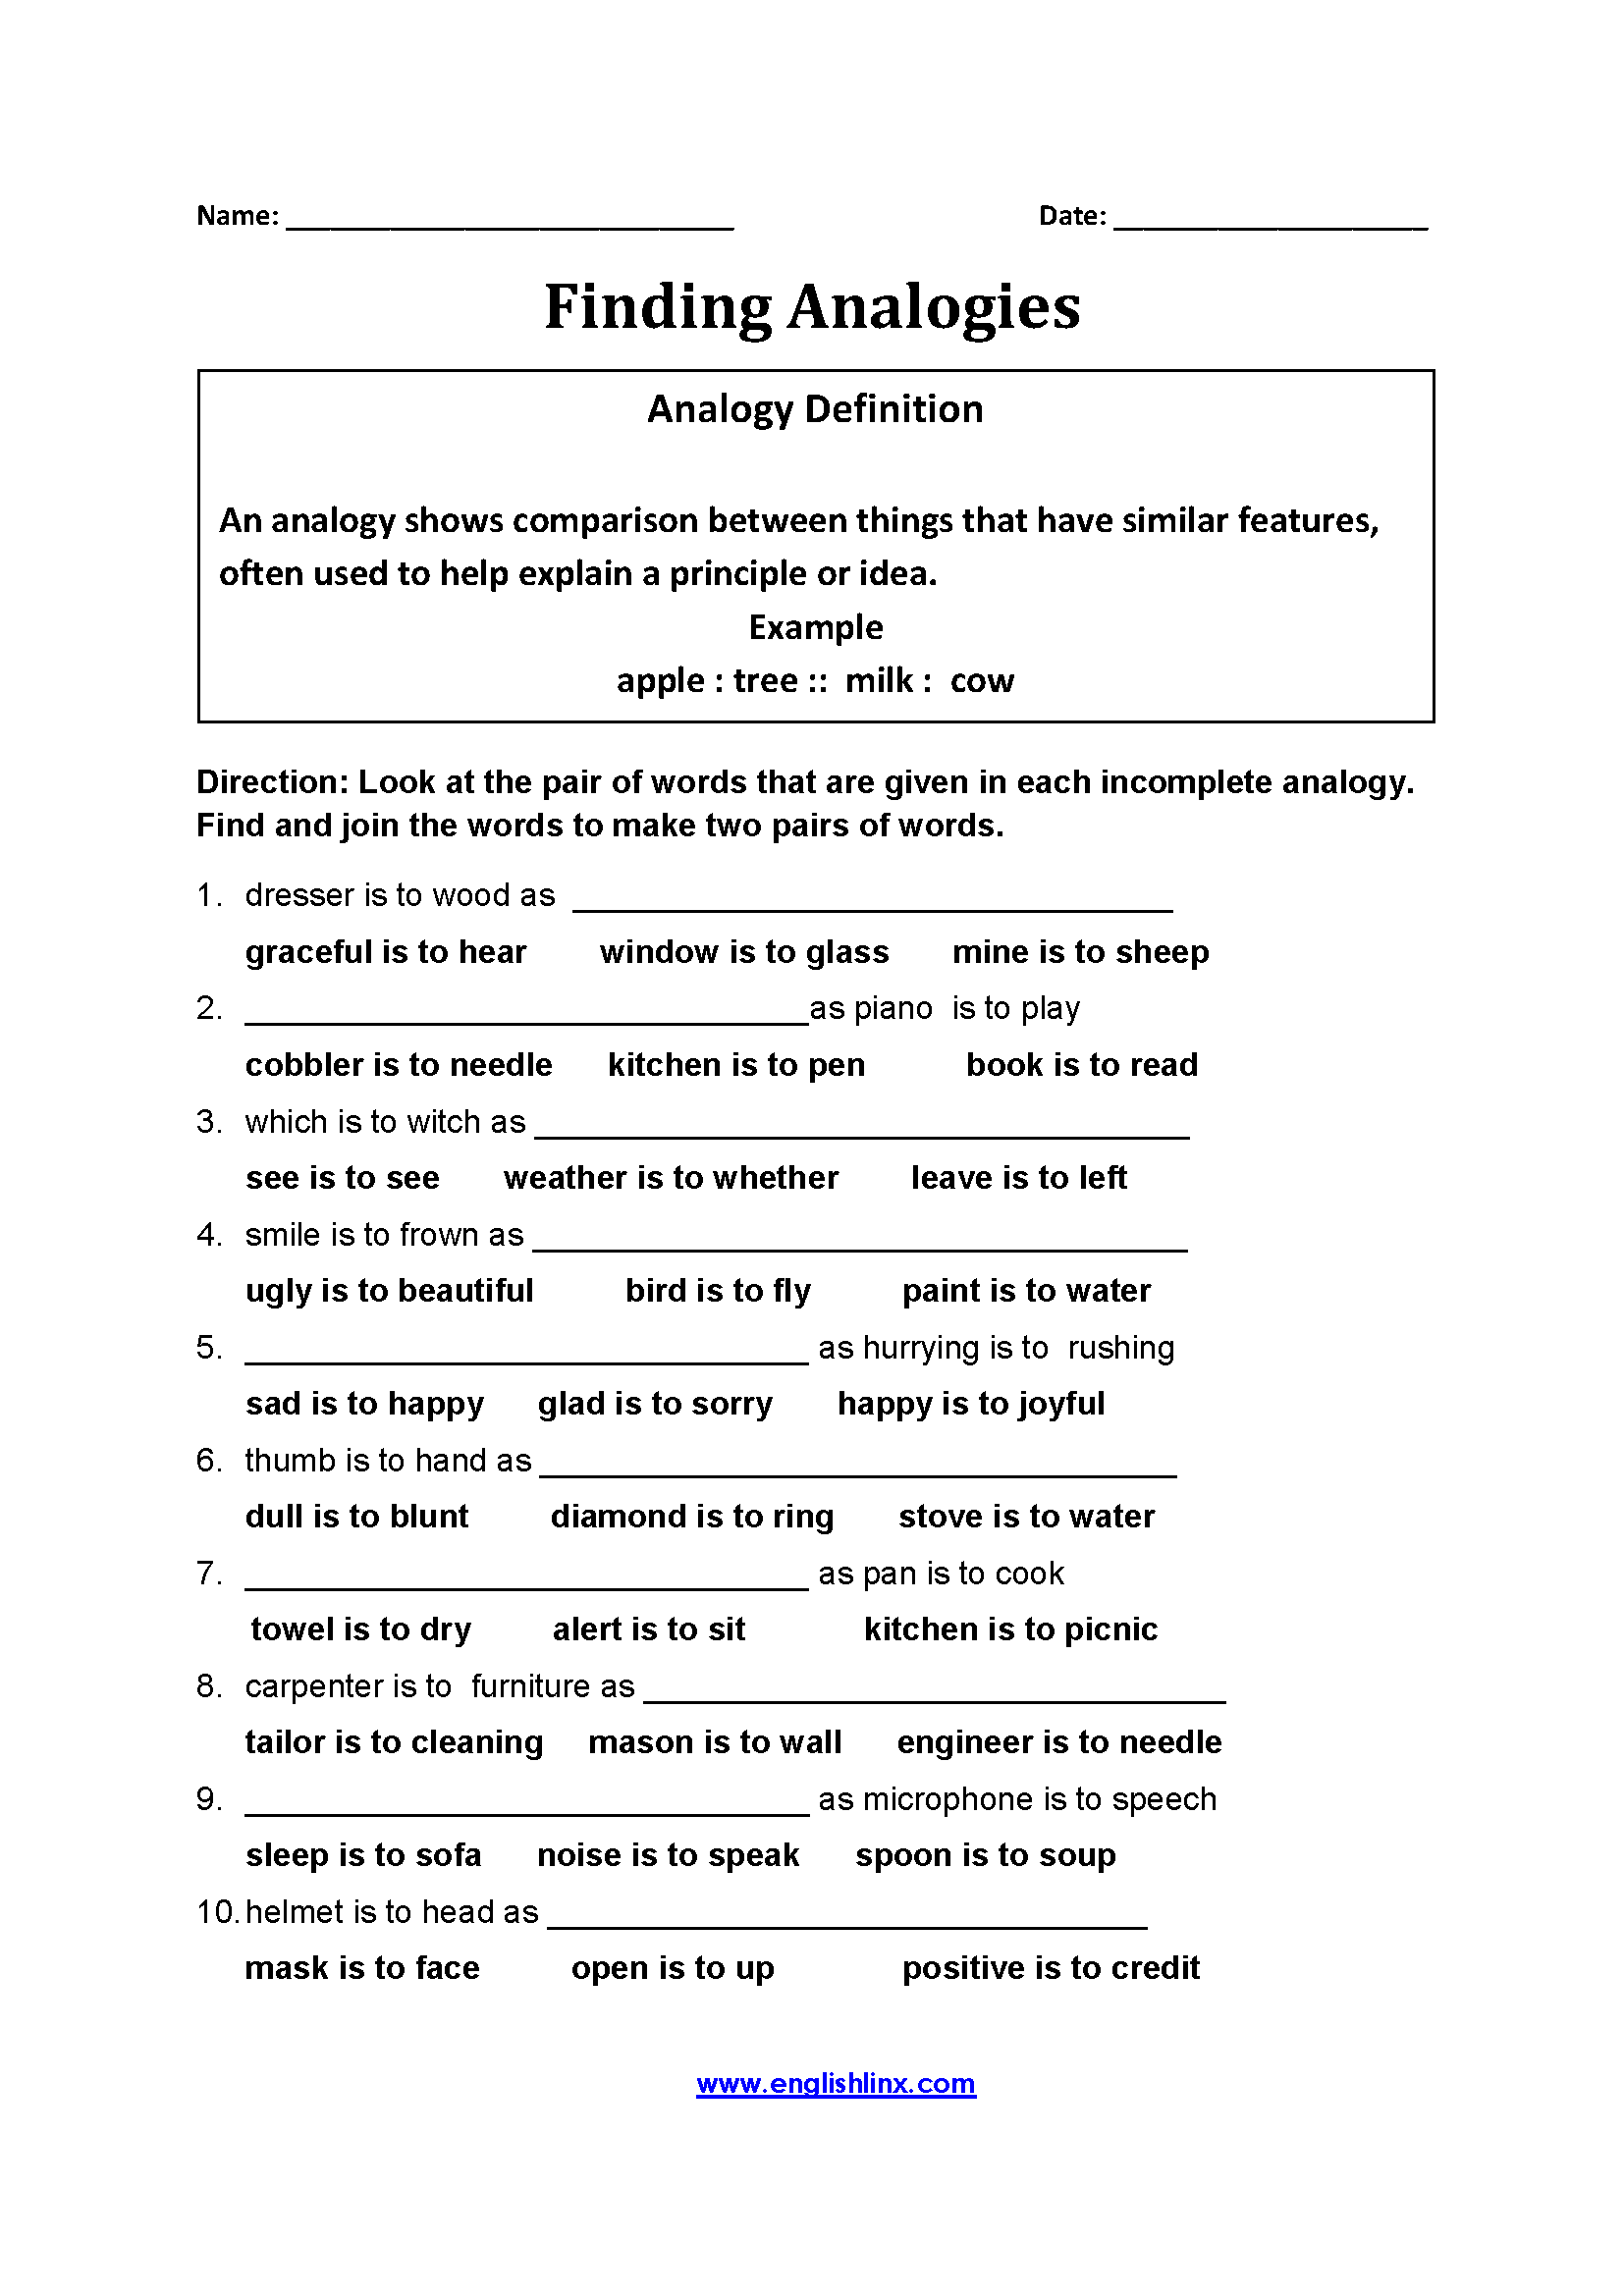 Finding Analogy Worksheets